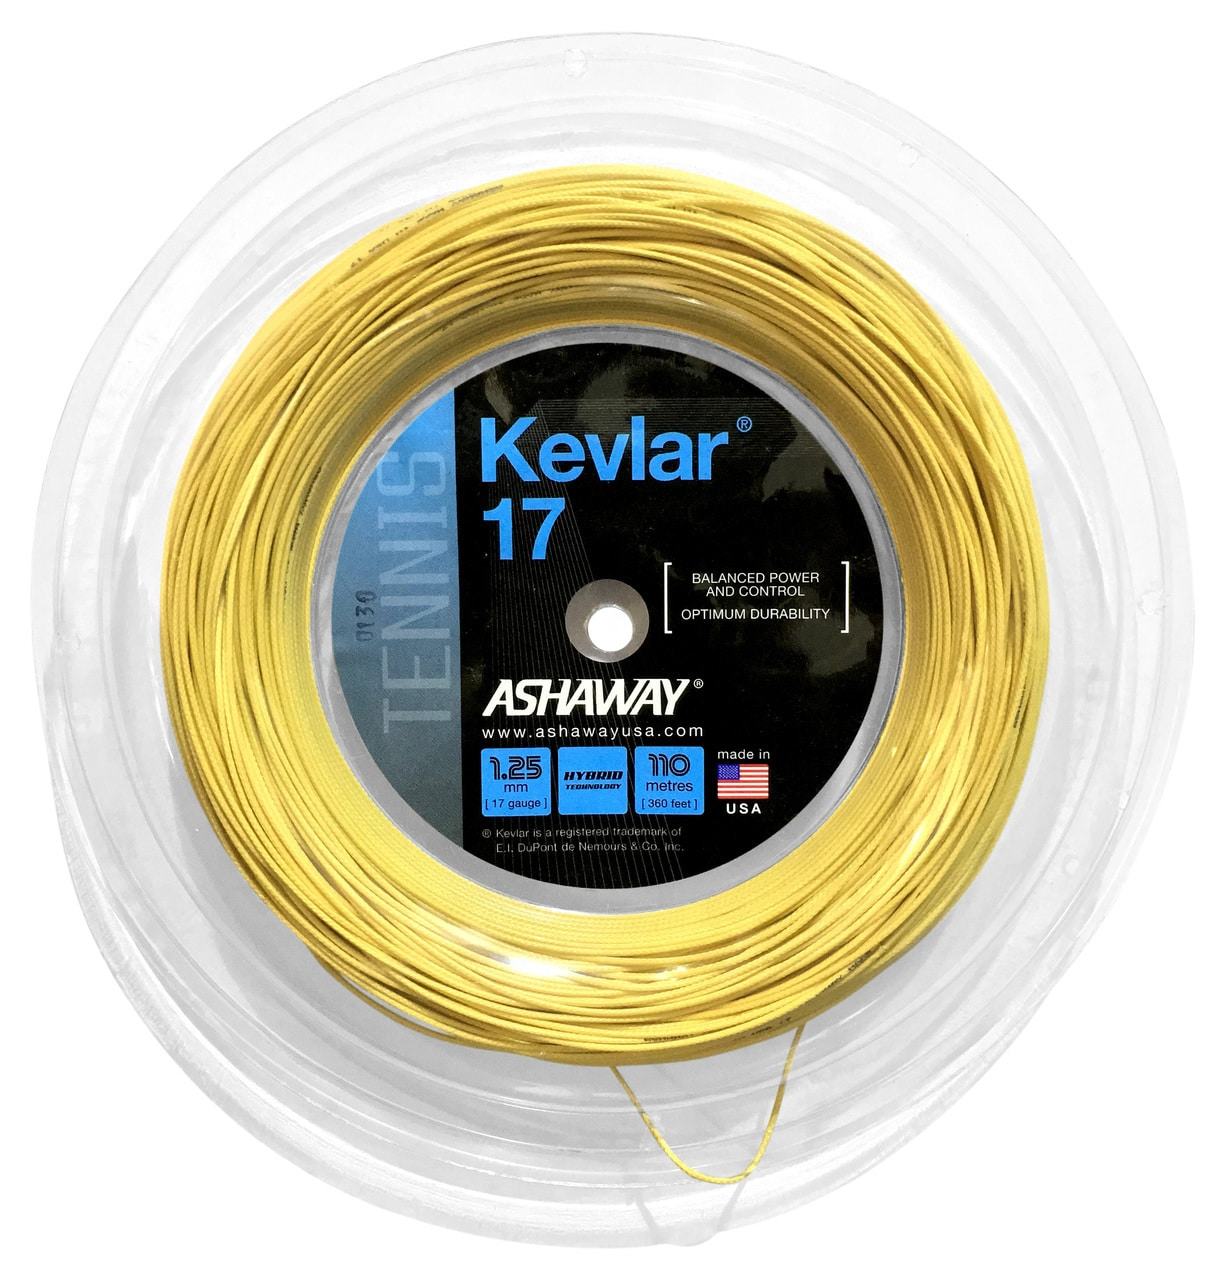 kevlar strings